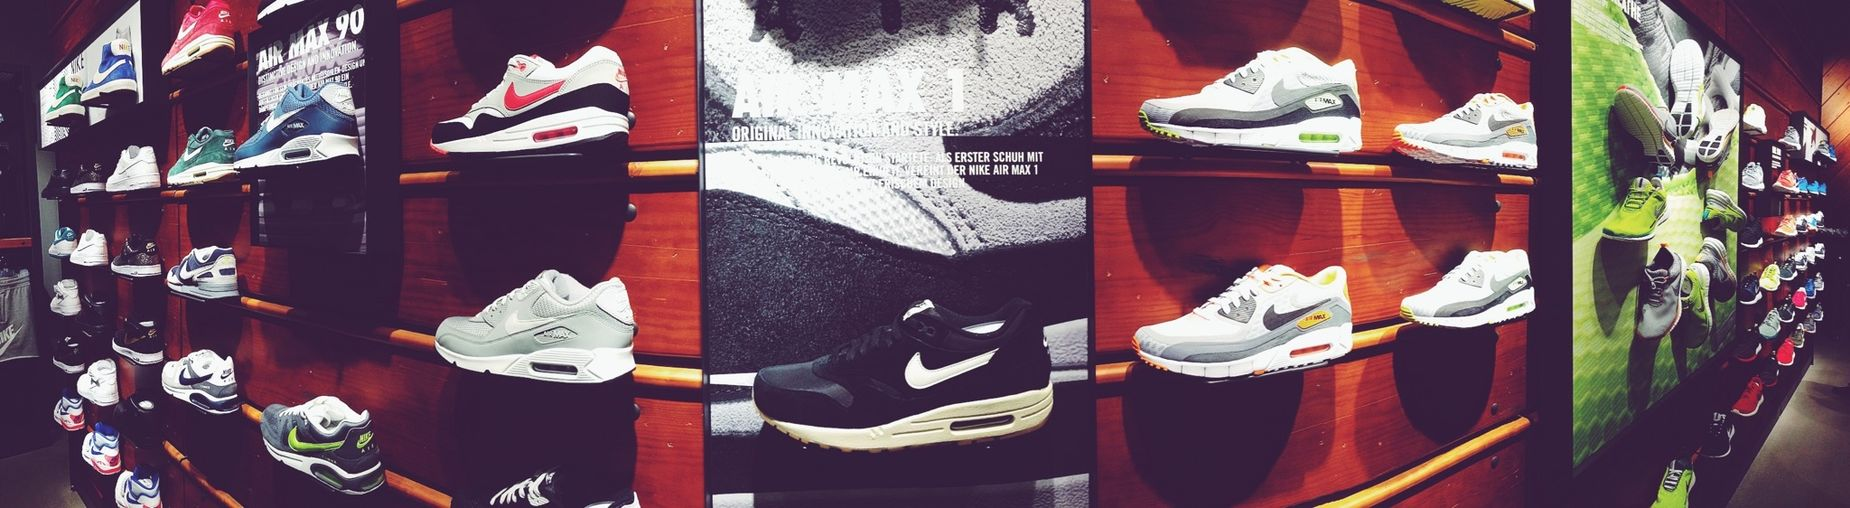 Nike Air Max 1 Just Do It Nike Store Berlin Mitte